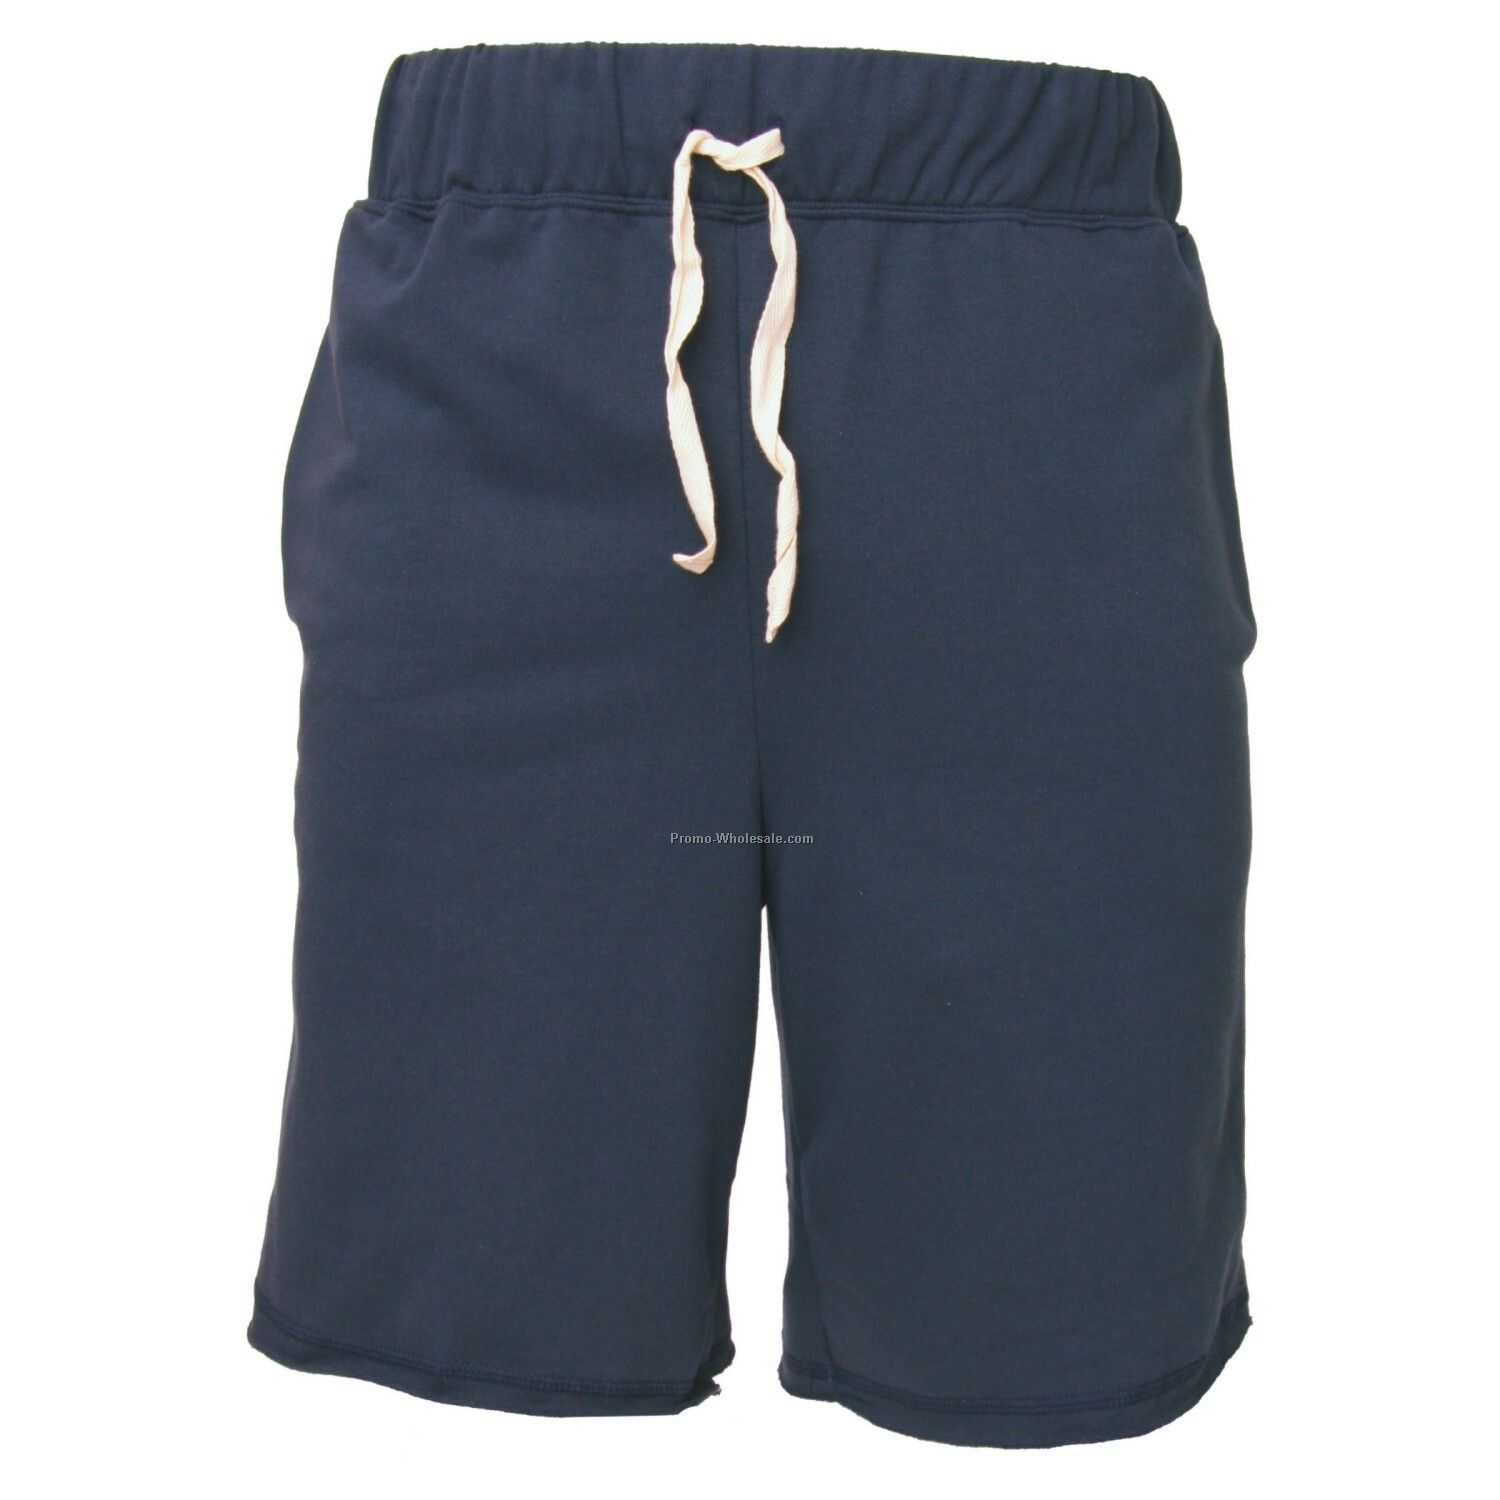 Youths' Navy Blue First Place Fleece Shorts With 2 Side Pockets (Ys-yl)